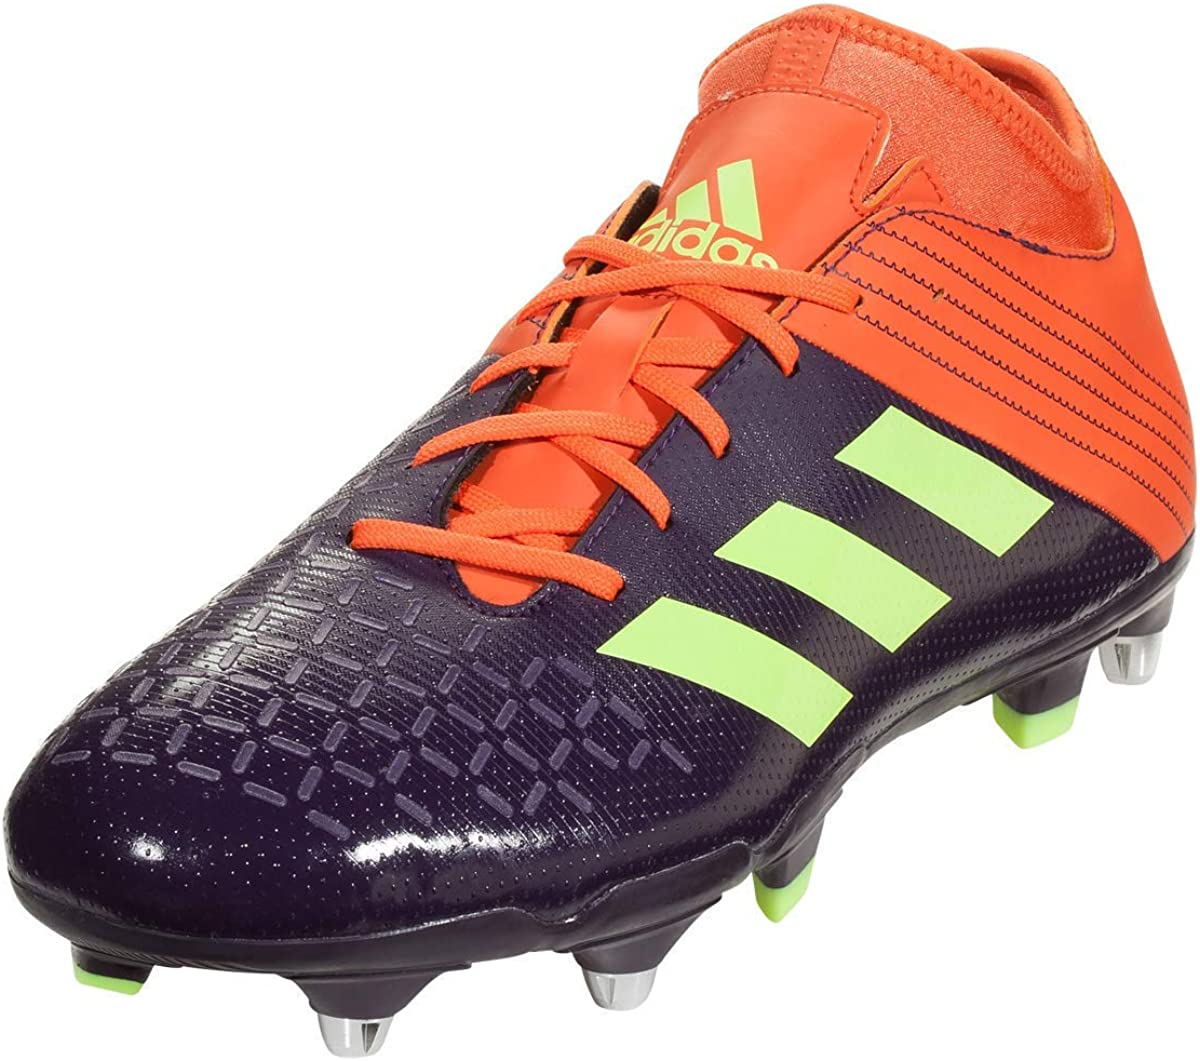 adidas Malice Elite SG Rugby Boots, Purple